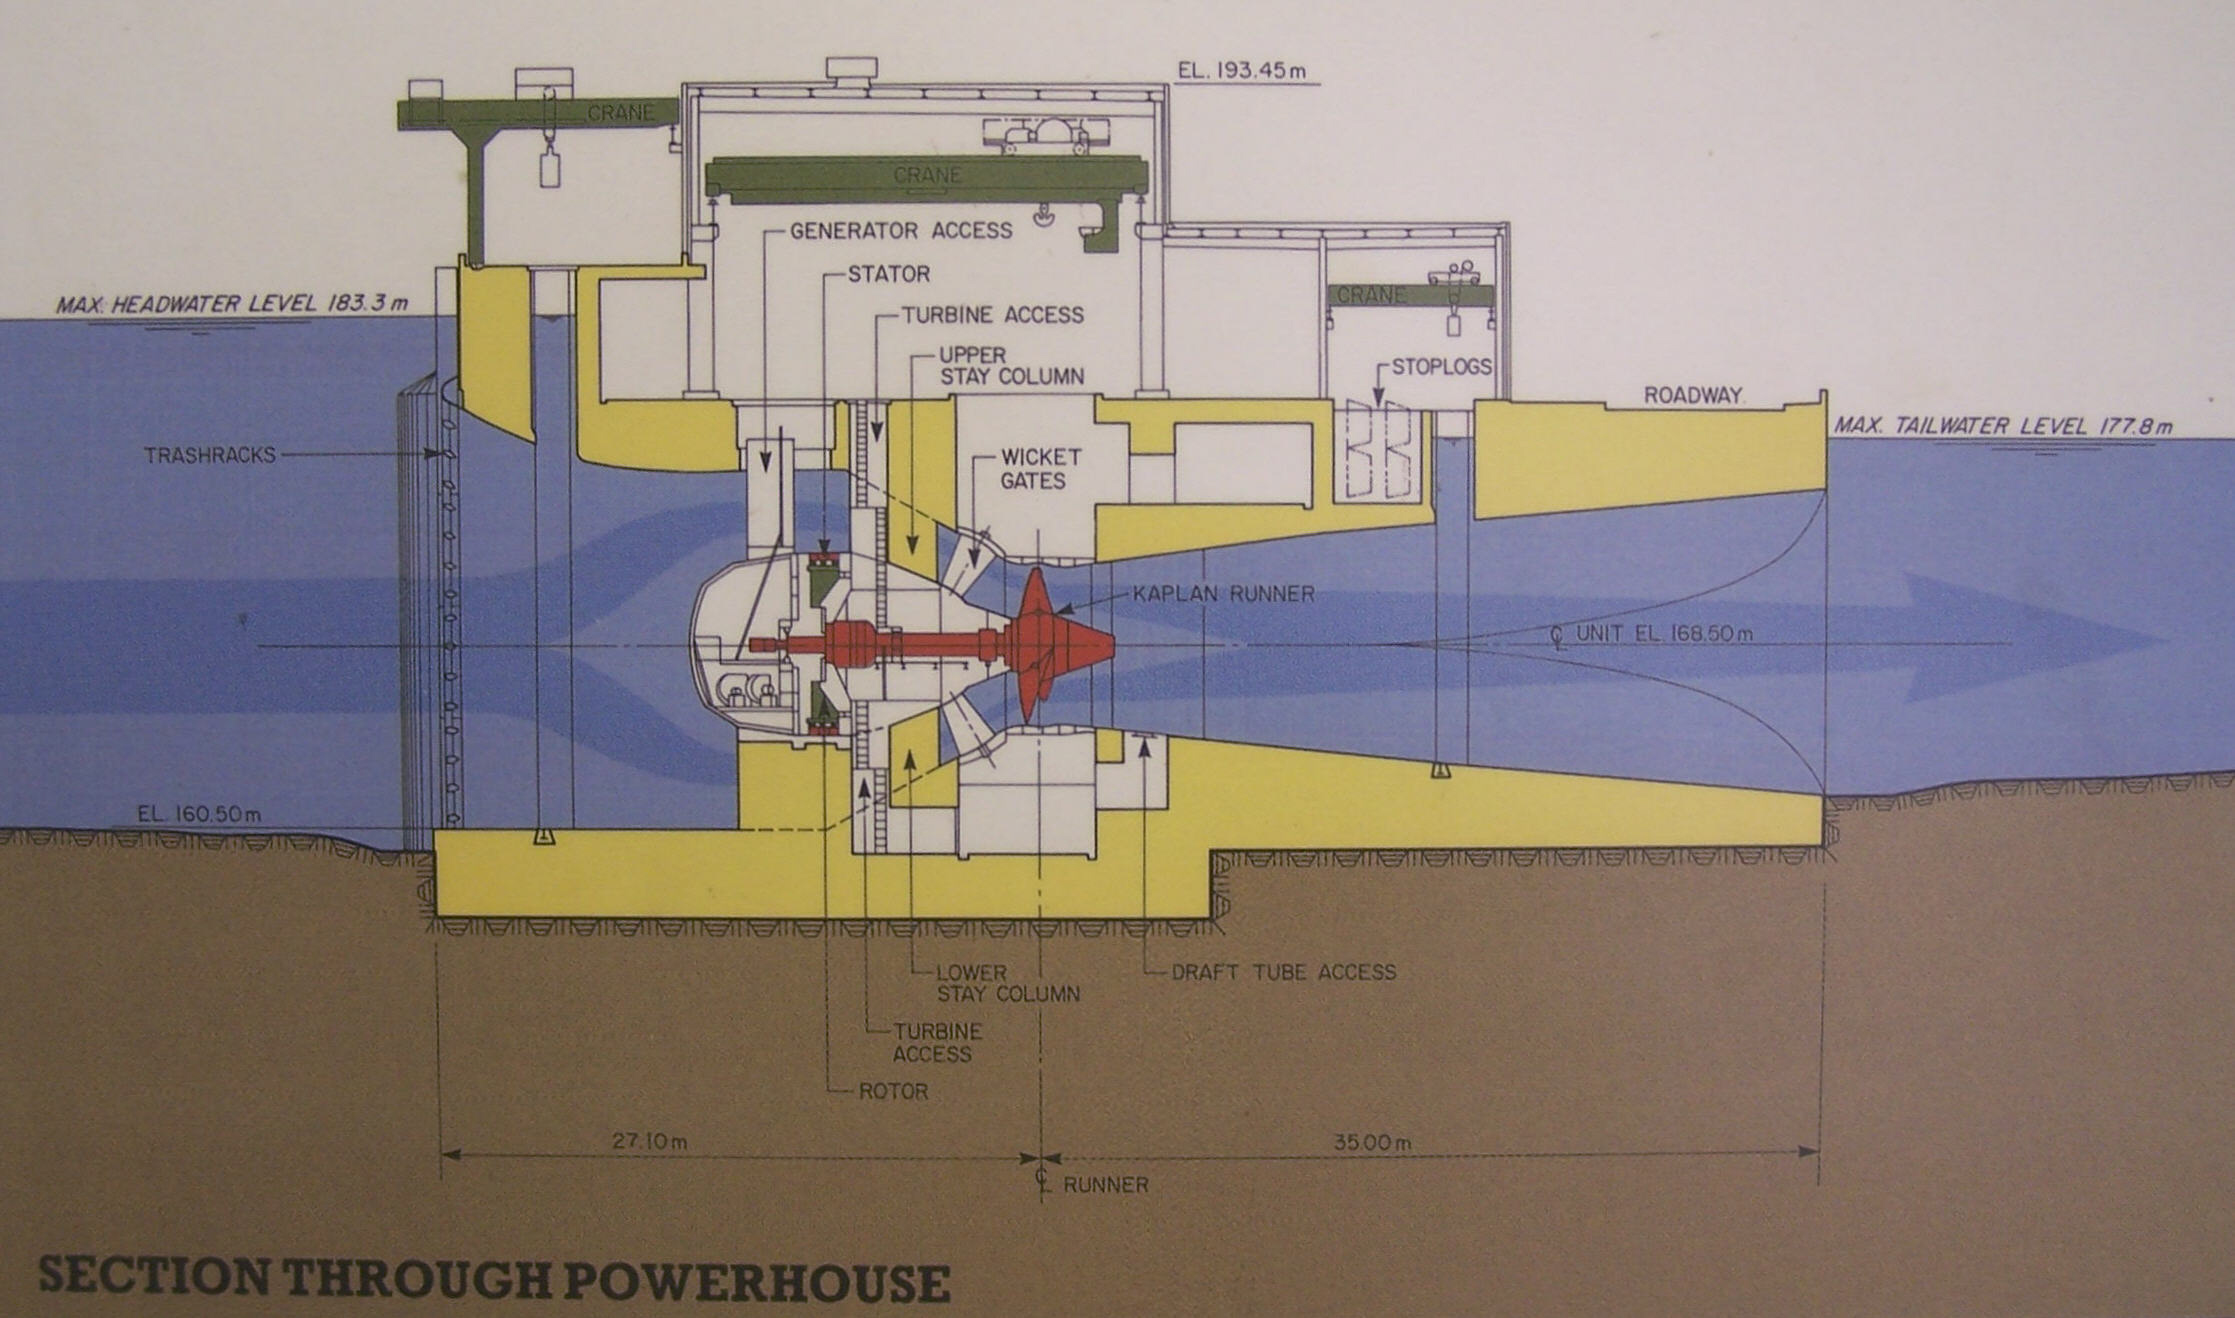 hydroelectric power plant schematic diagram #14 Hydroelectricity Plant Diagram hydroelectric power plant schematic diagram